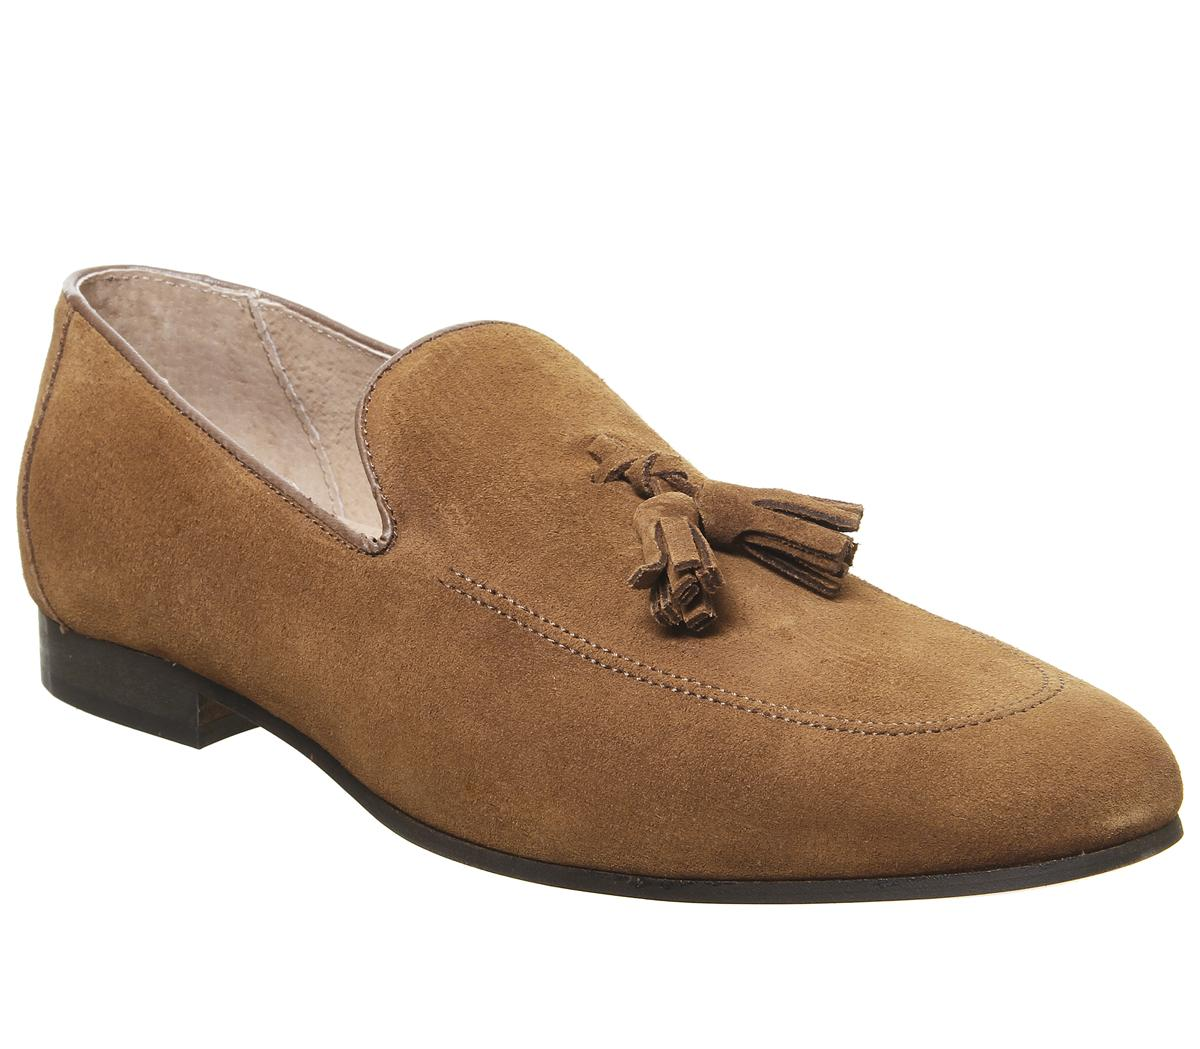 Office Canter Tassel Loafers Tan Suede